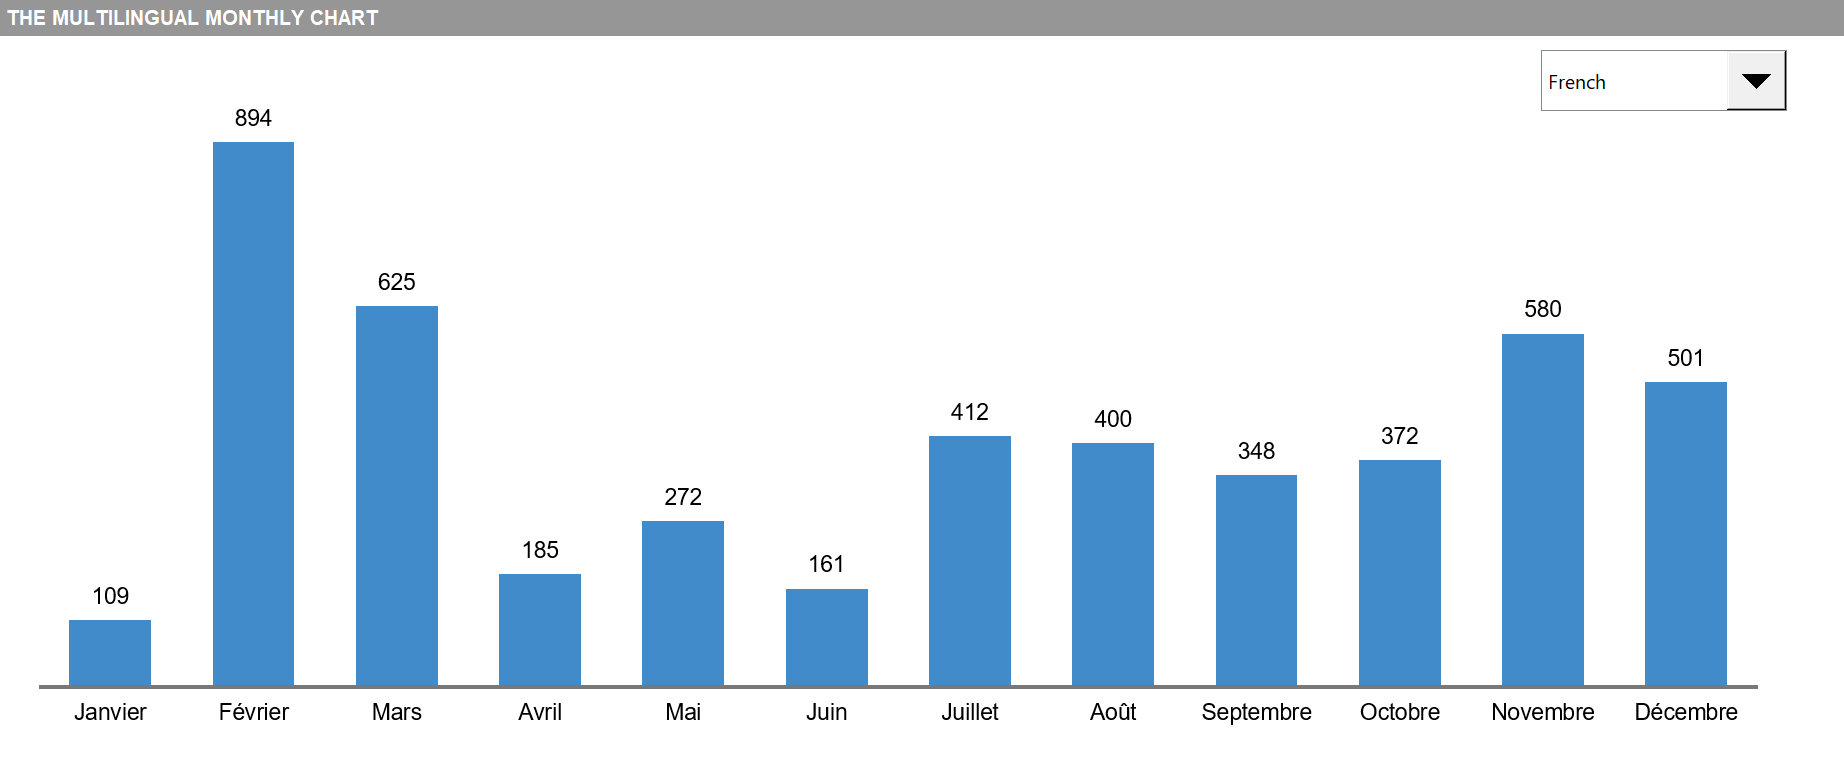 The diverse monthly chart for global users